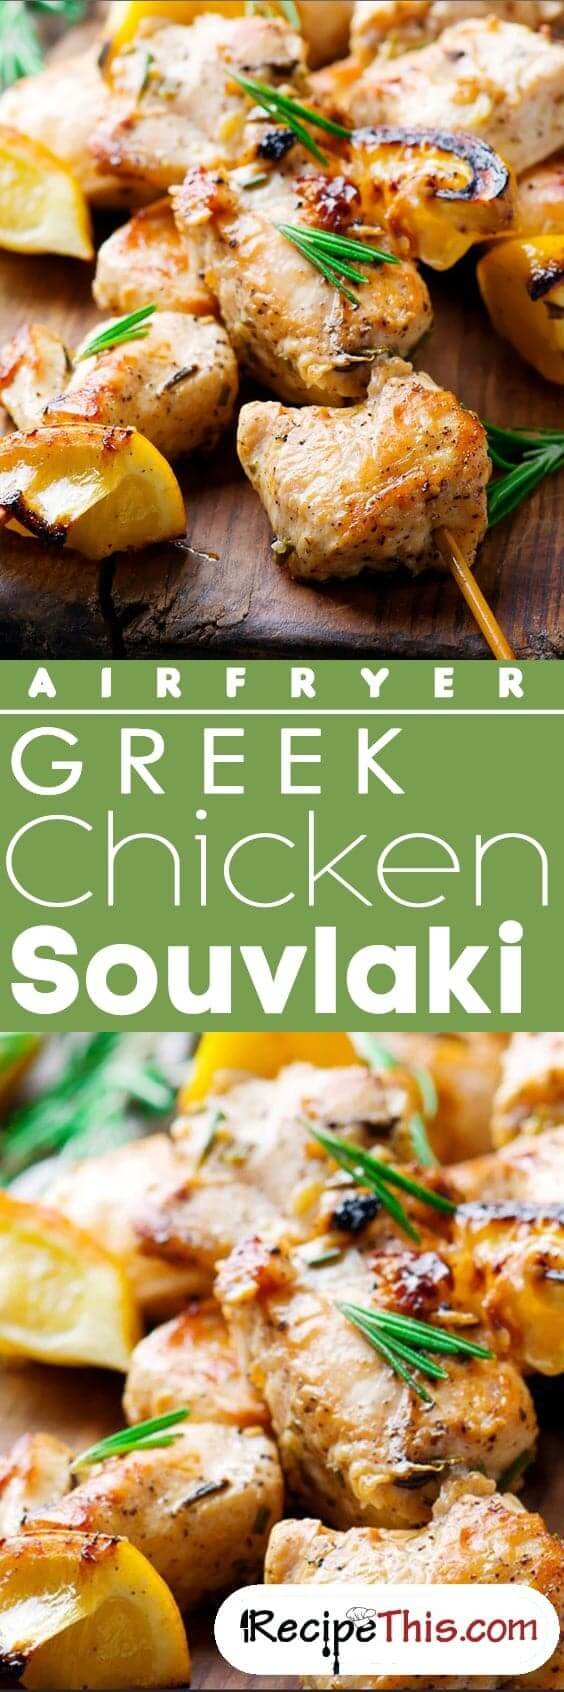 Airfryer Greek Chicken Souvlaki